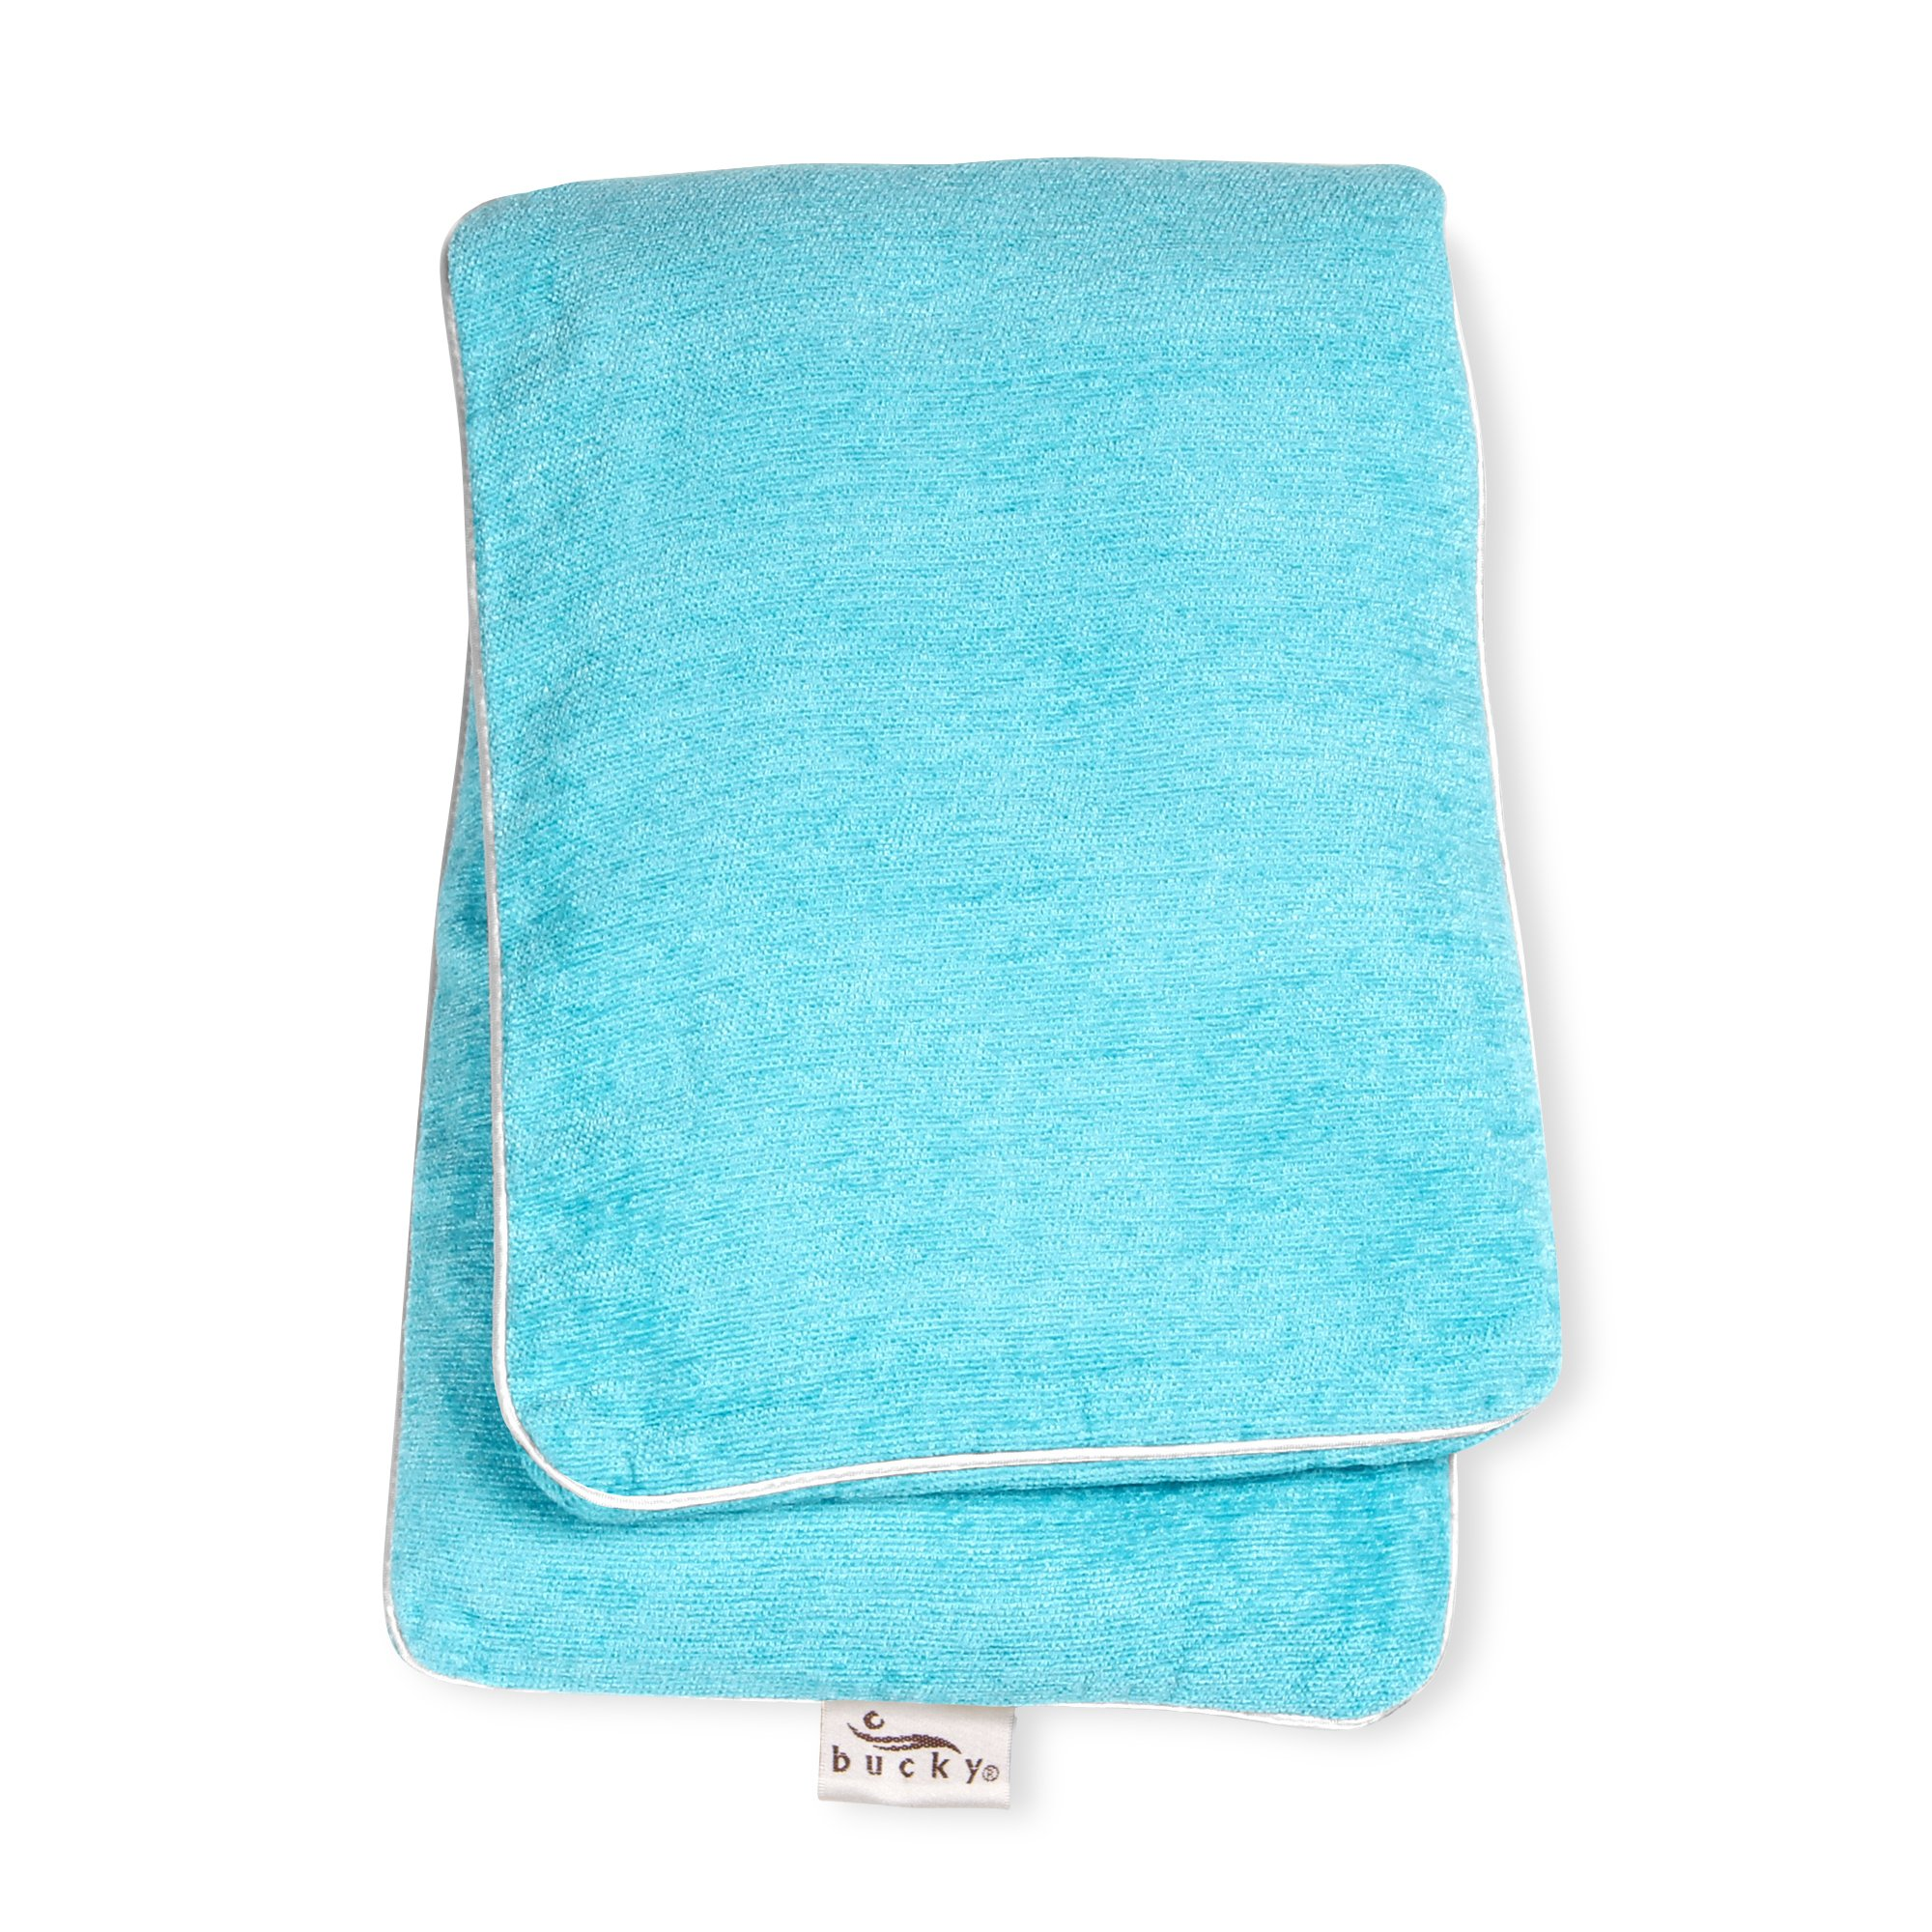 Bucky Hot & Cold Therapy Body Wrap to Relieve Sore or Achy Muscles, All Natural Buckwheat Seed Filling with Removable & Washable Cover, Use For Neck, Back, or Menstrual Pain Relief - Aqua